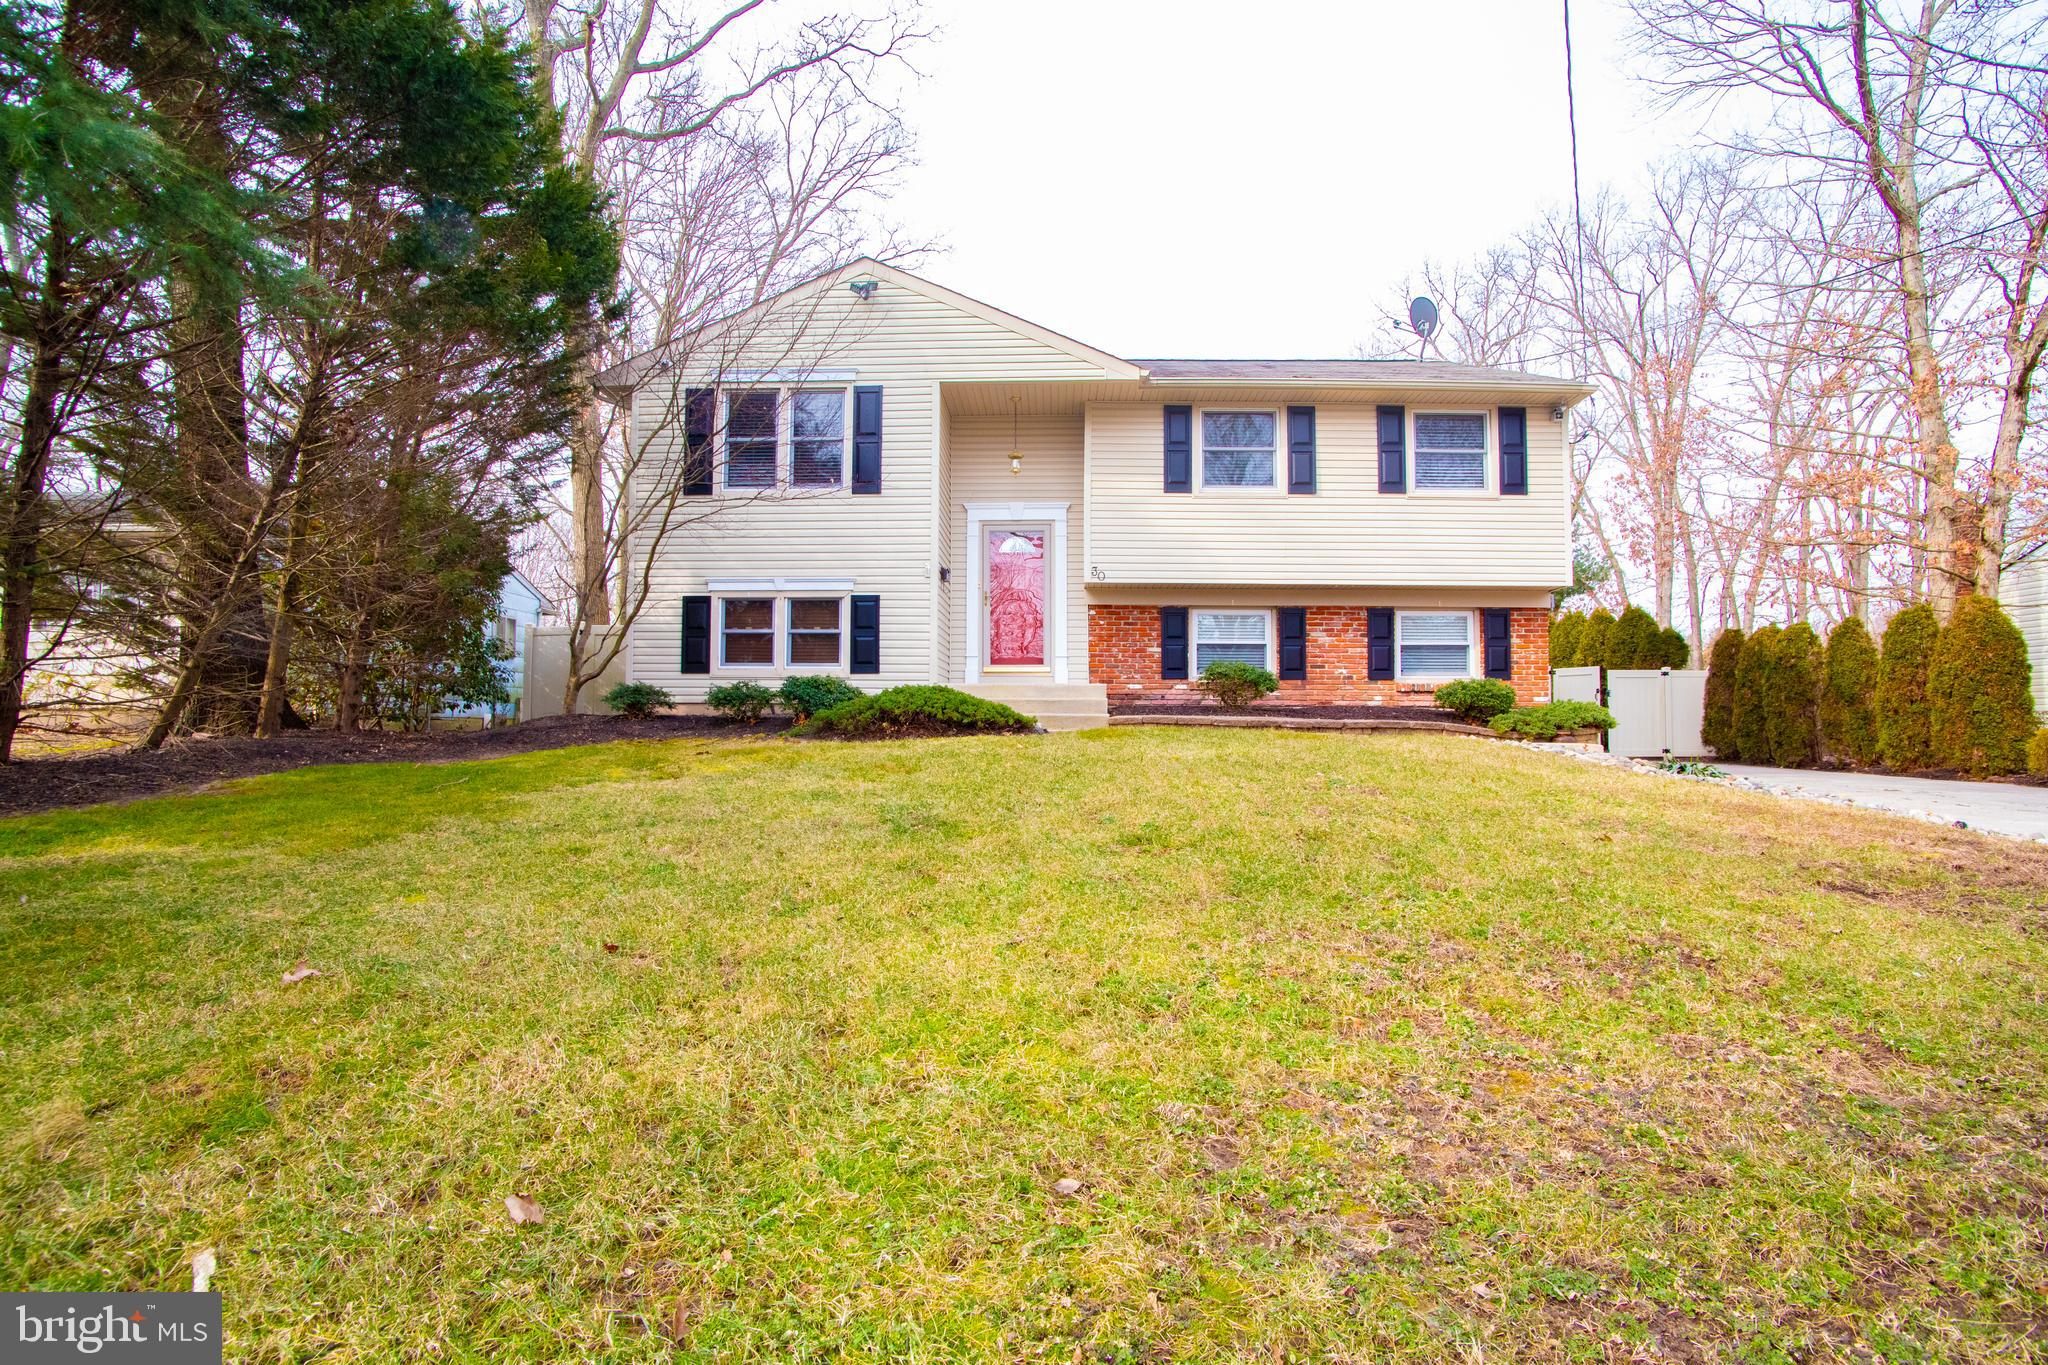 30 WHITE BIRCH ROAD, TURNERSVILLE, NJ 08012